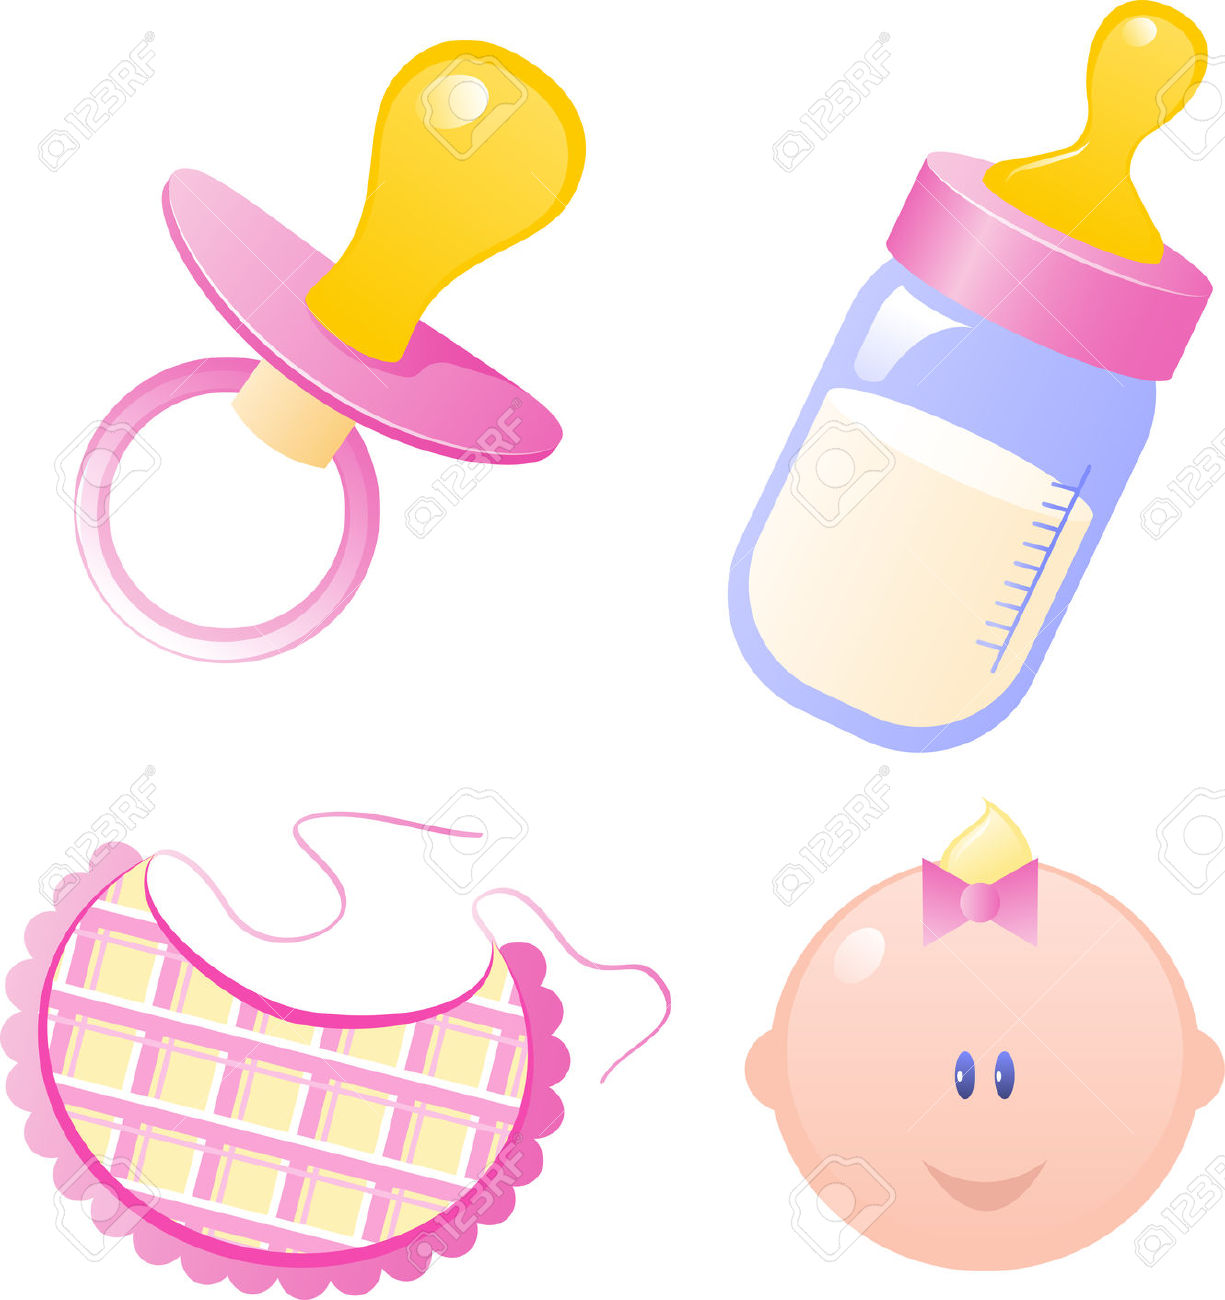 Baby girl bottle clipart banner transparent stock Pink Vector Baby's Dummy, Baby Bottle, Bib And Baby Girl. Isolated ... banner transparent stock